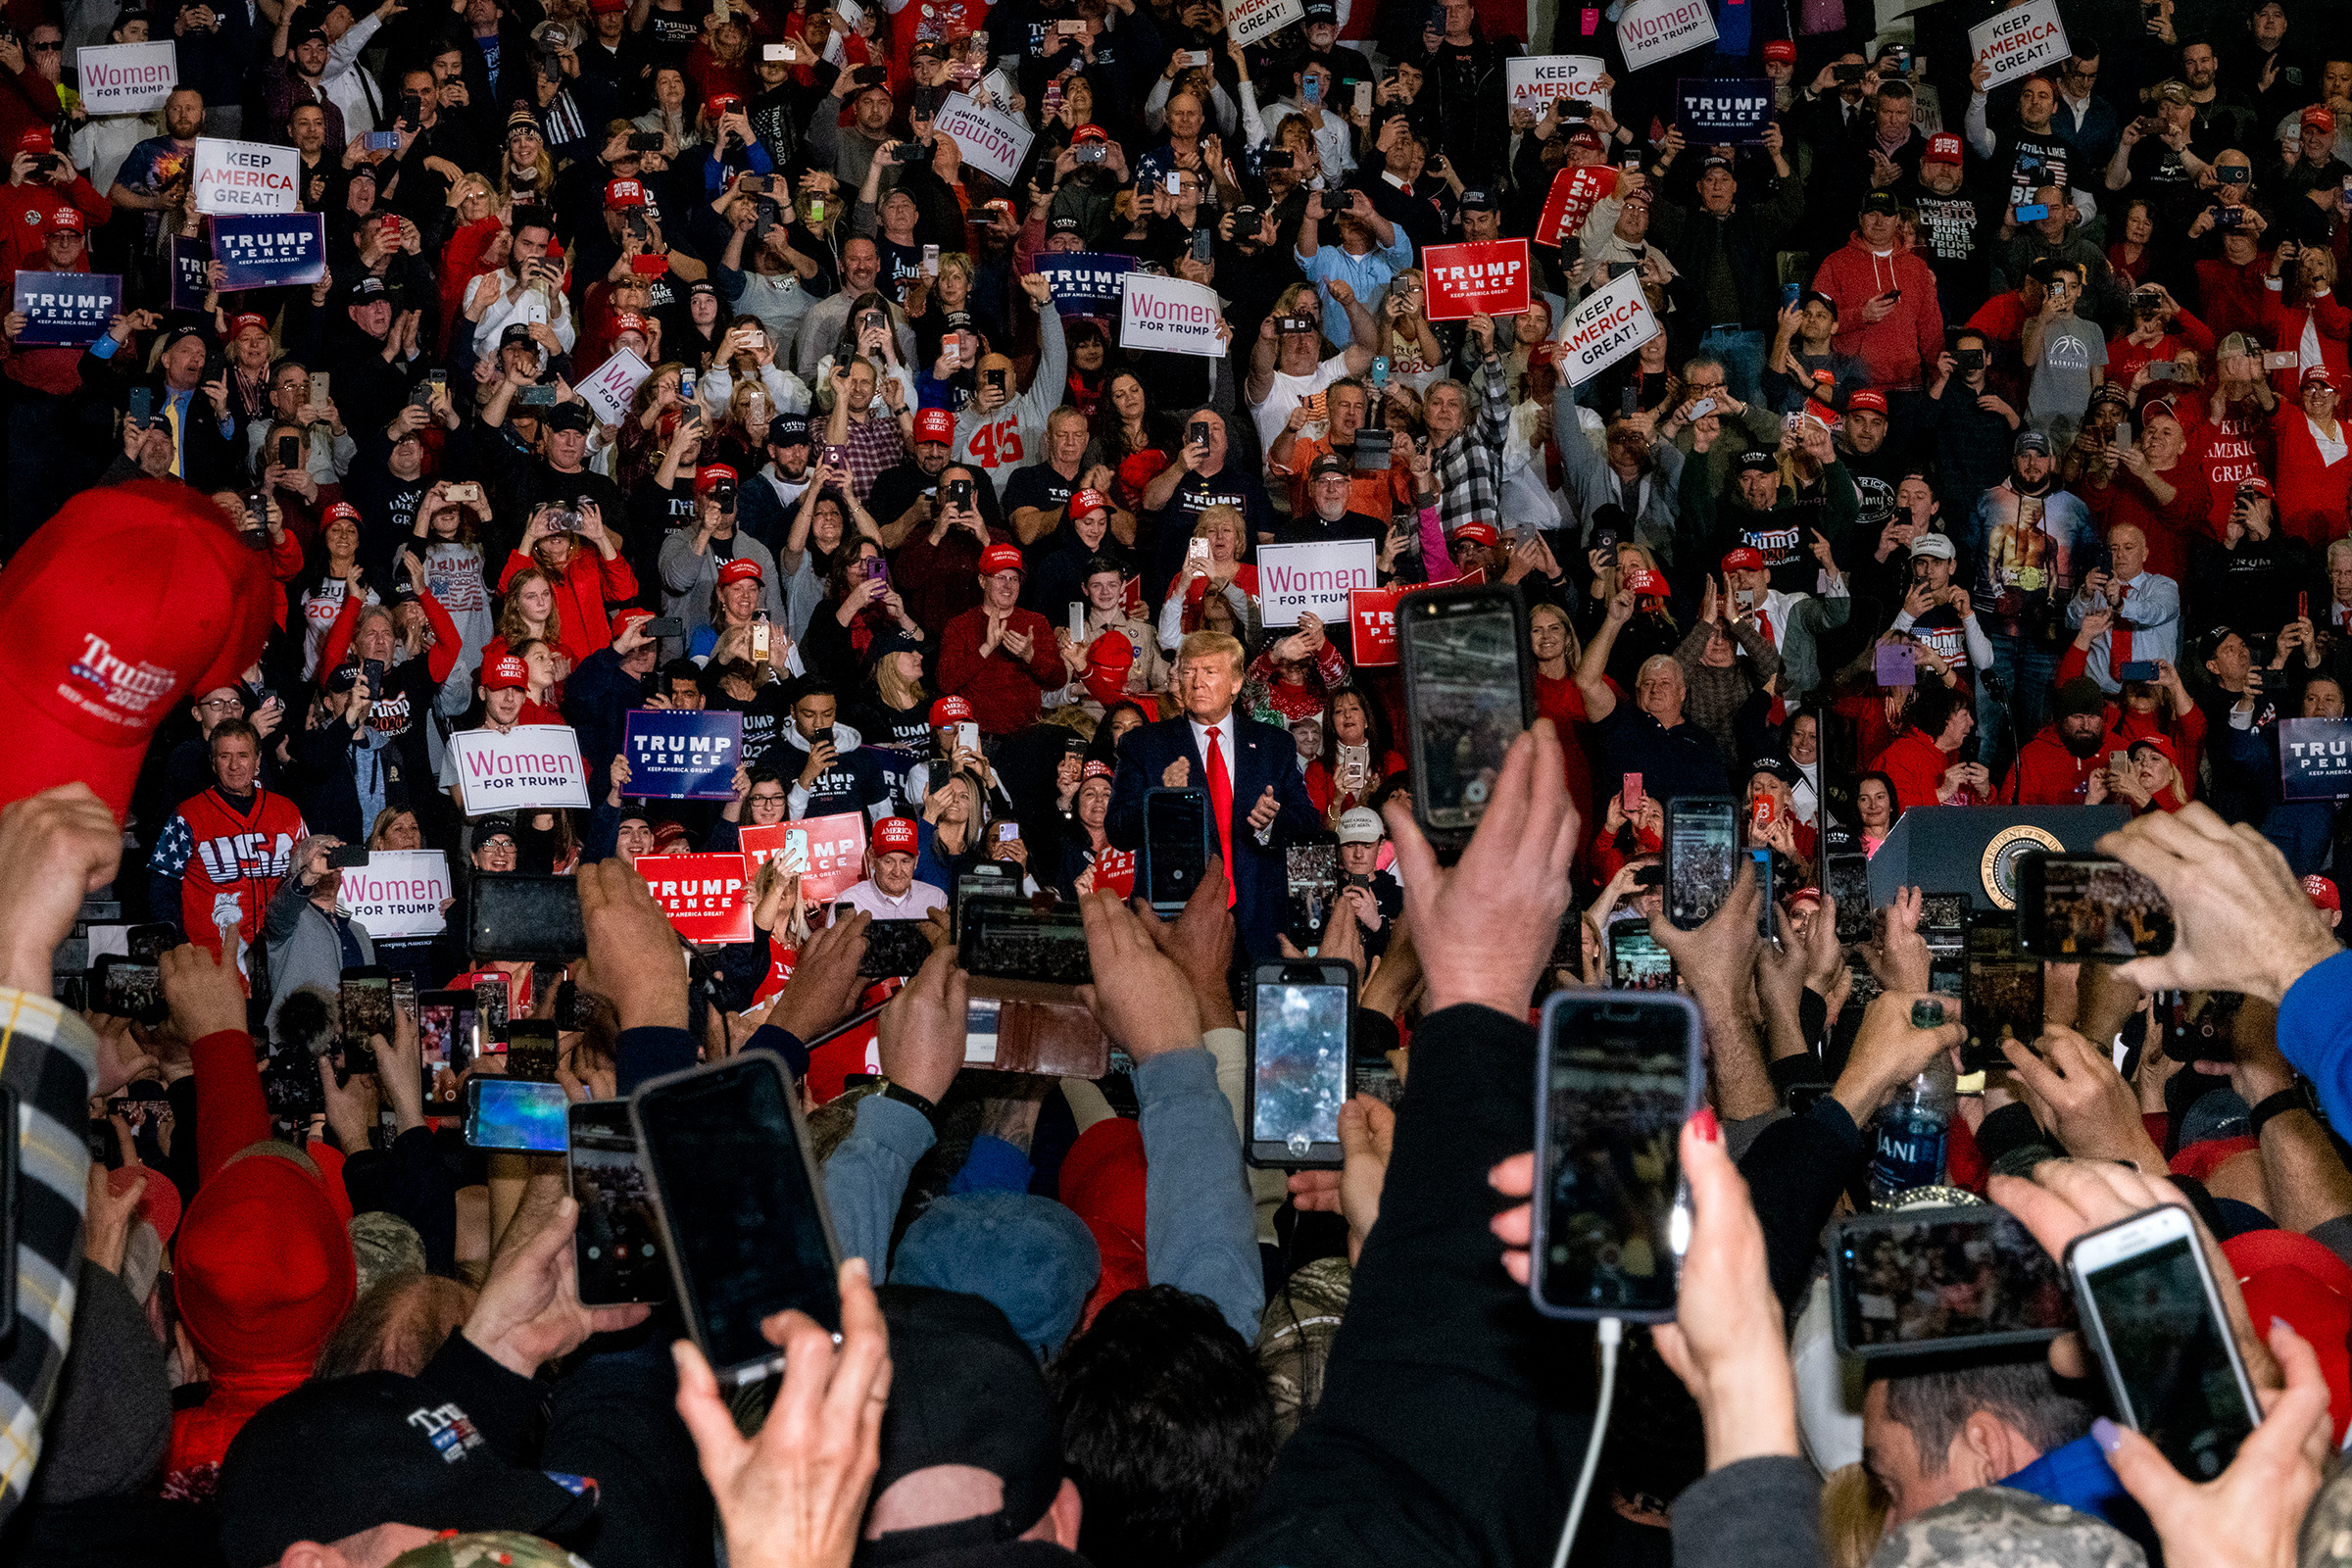 Wildwood, N.J., Jan. 28, 2020.  Trump rallies have a certain formula. He is a showman trying out new lines and new tricks to see how the audience responds. The successful lines become part of the act, and the rest are discarded. He always stokes anger at the 'fake news,' and thousands turn around to boo the media and give us the finger. Yet when we talk to Trump's supporters before and after his speech, they are generally kind and polite. After I had a violent encounter with a mob in Egypt in 2011, I know how quickly and easily groups of people can turn.